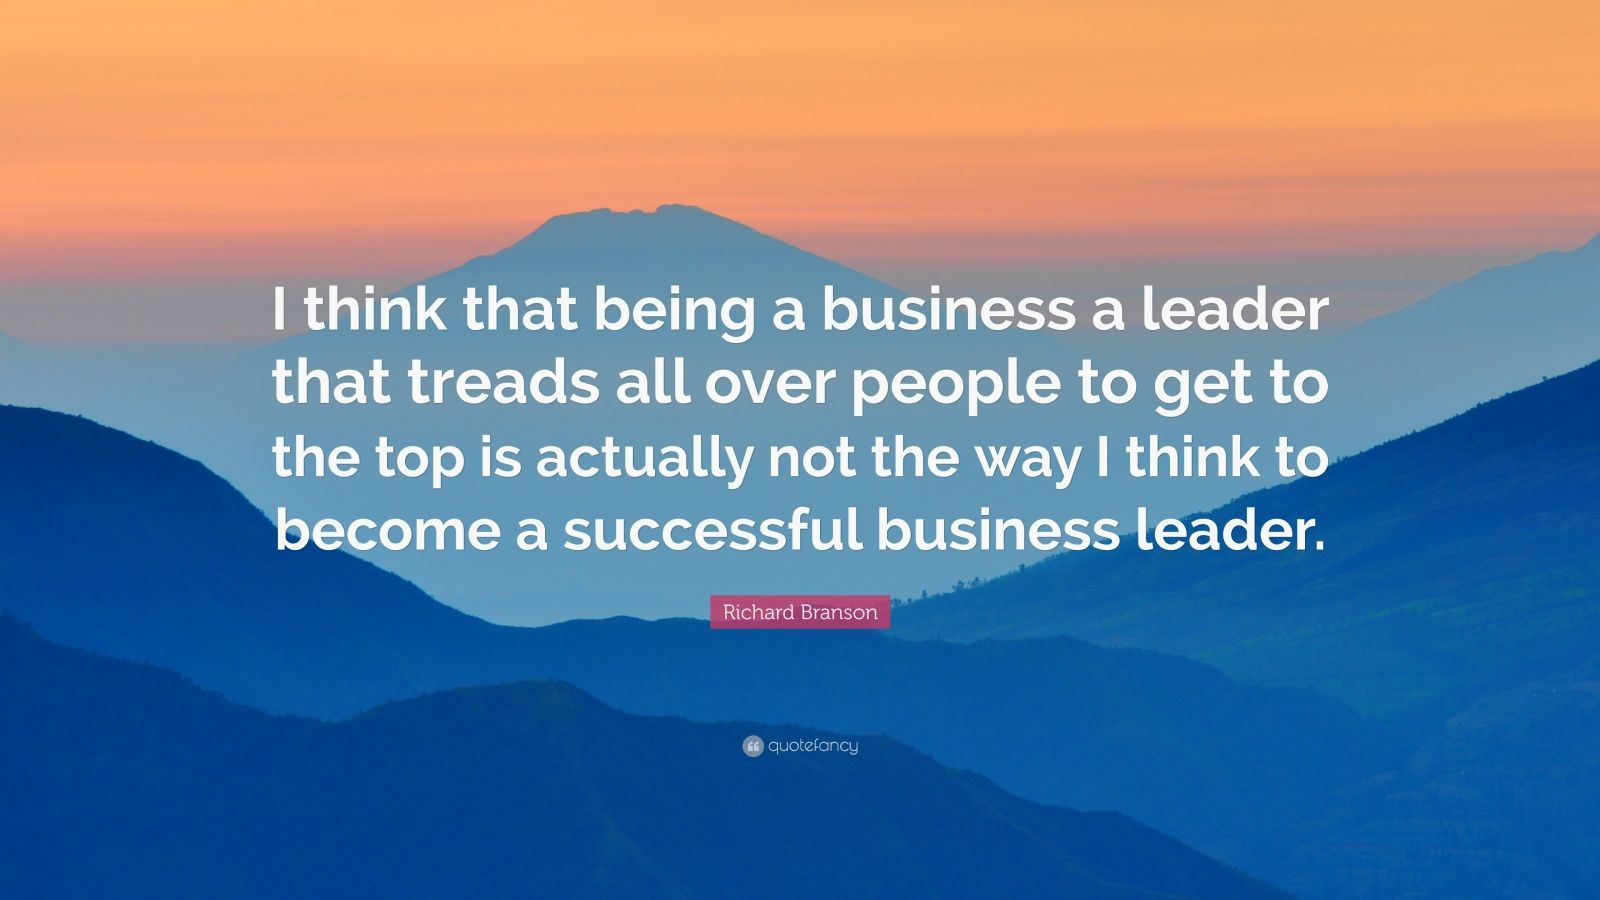 """Richard Branson Quote: """"I think that being a business a leader that treads all over people to get to the top is actually not the way I think to become a successful business leader."""""""